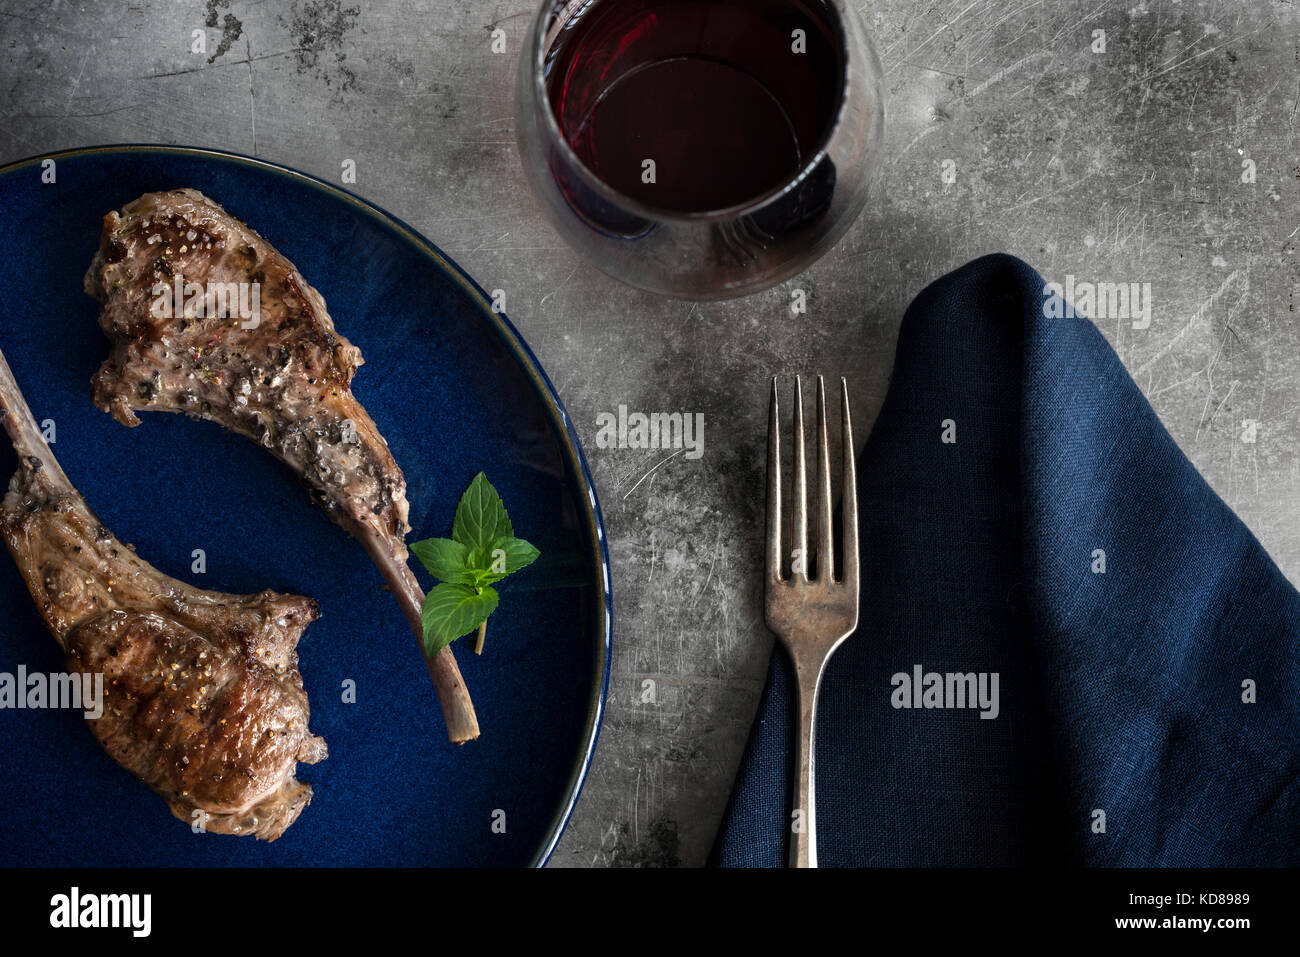 Roasted lollipop lamb chops on blue plate. Table setting with navy linen, red wine and rustic metal surface. - Stock Image